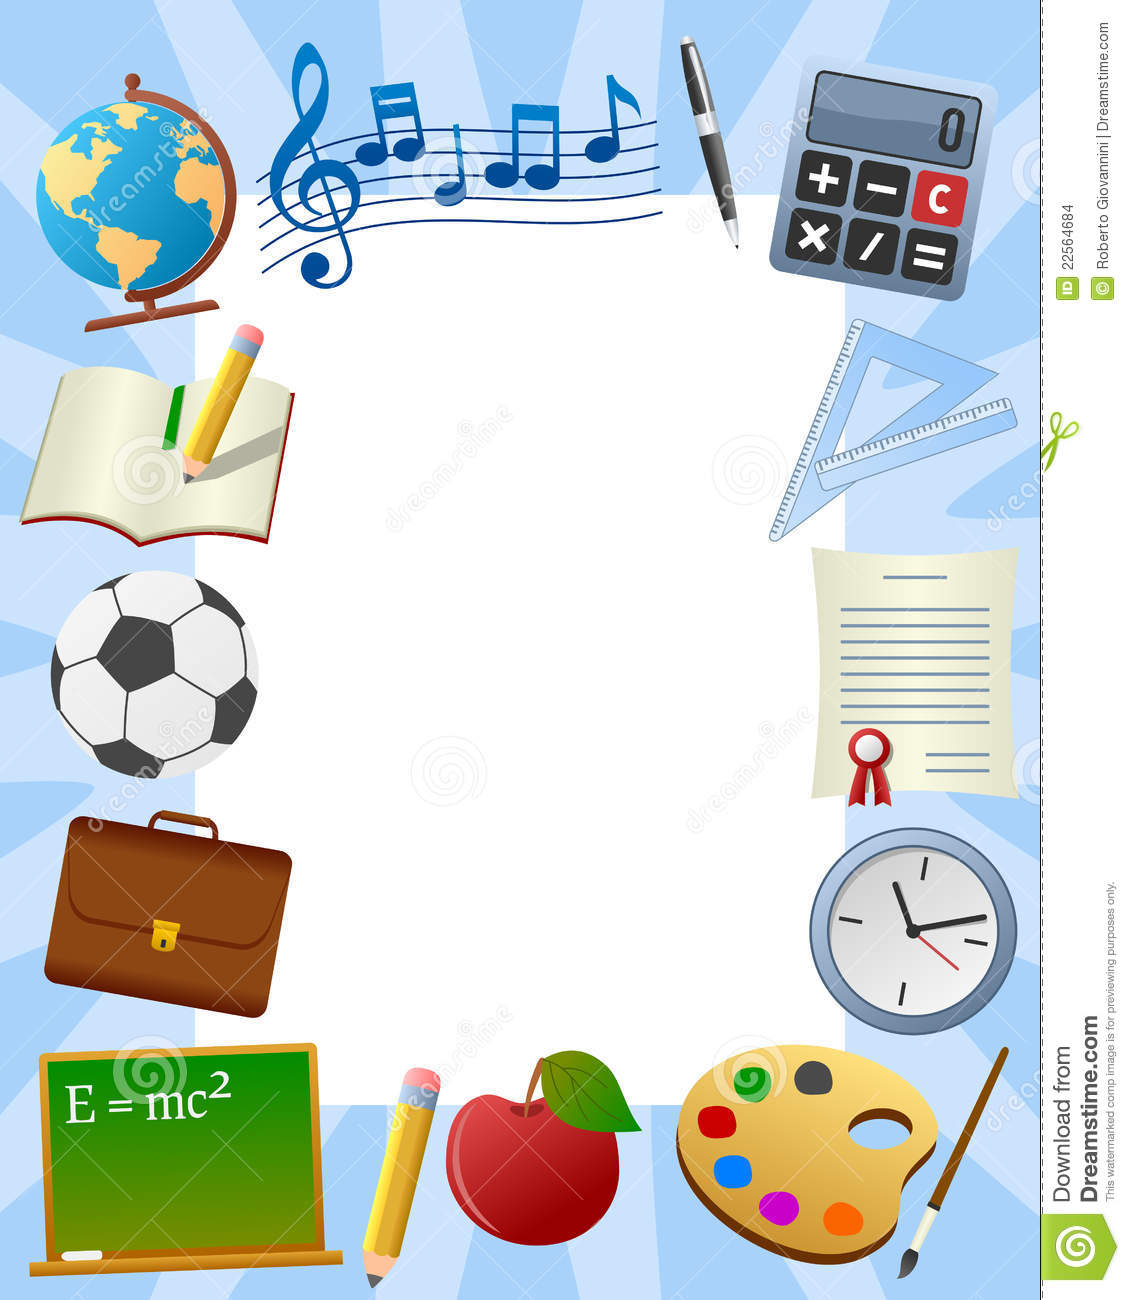 School Photo Frame [3] stock vector. Illustration of exercise - 22564684